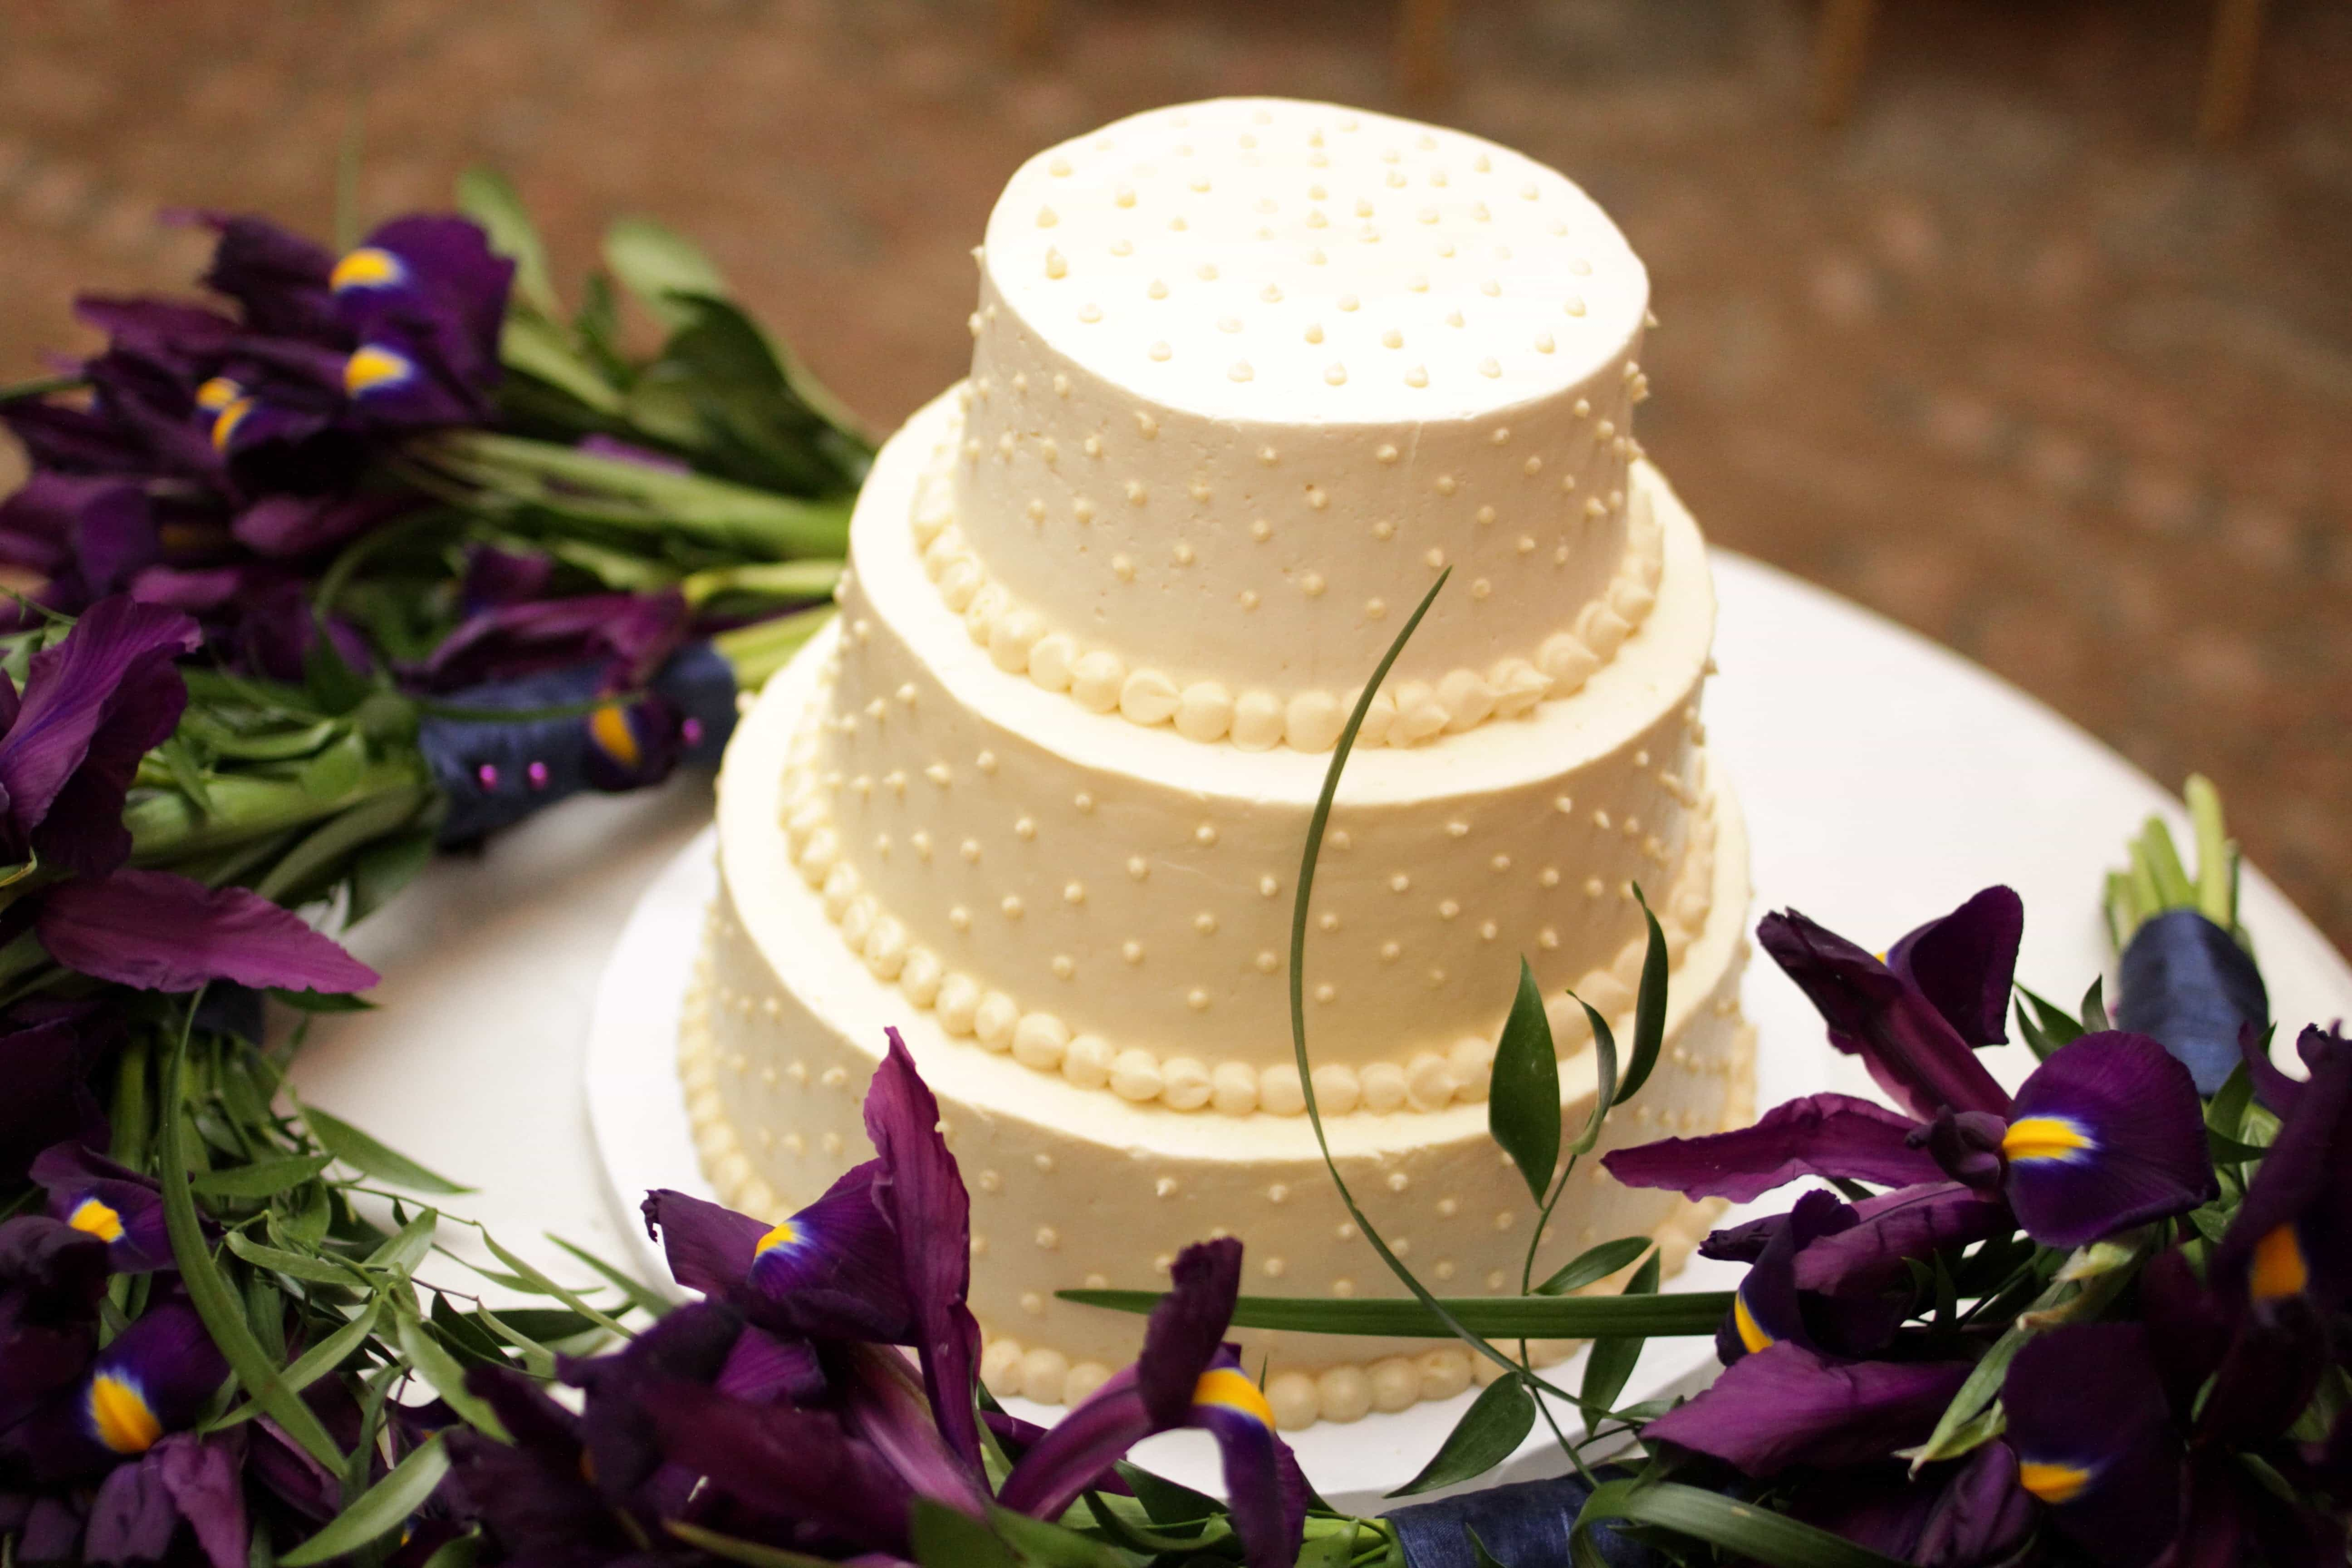 Classic Wedding Cake Centerpieces (Image 8 of 16)